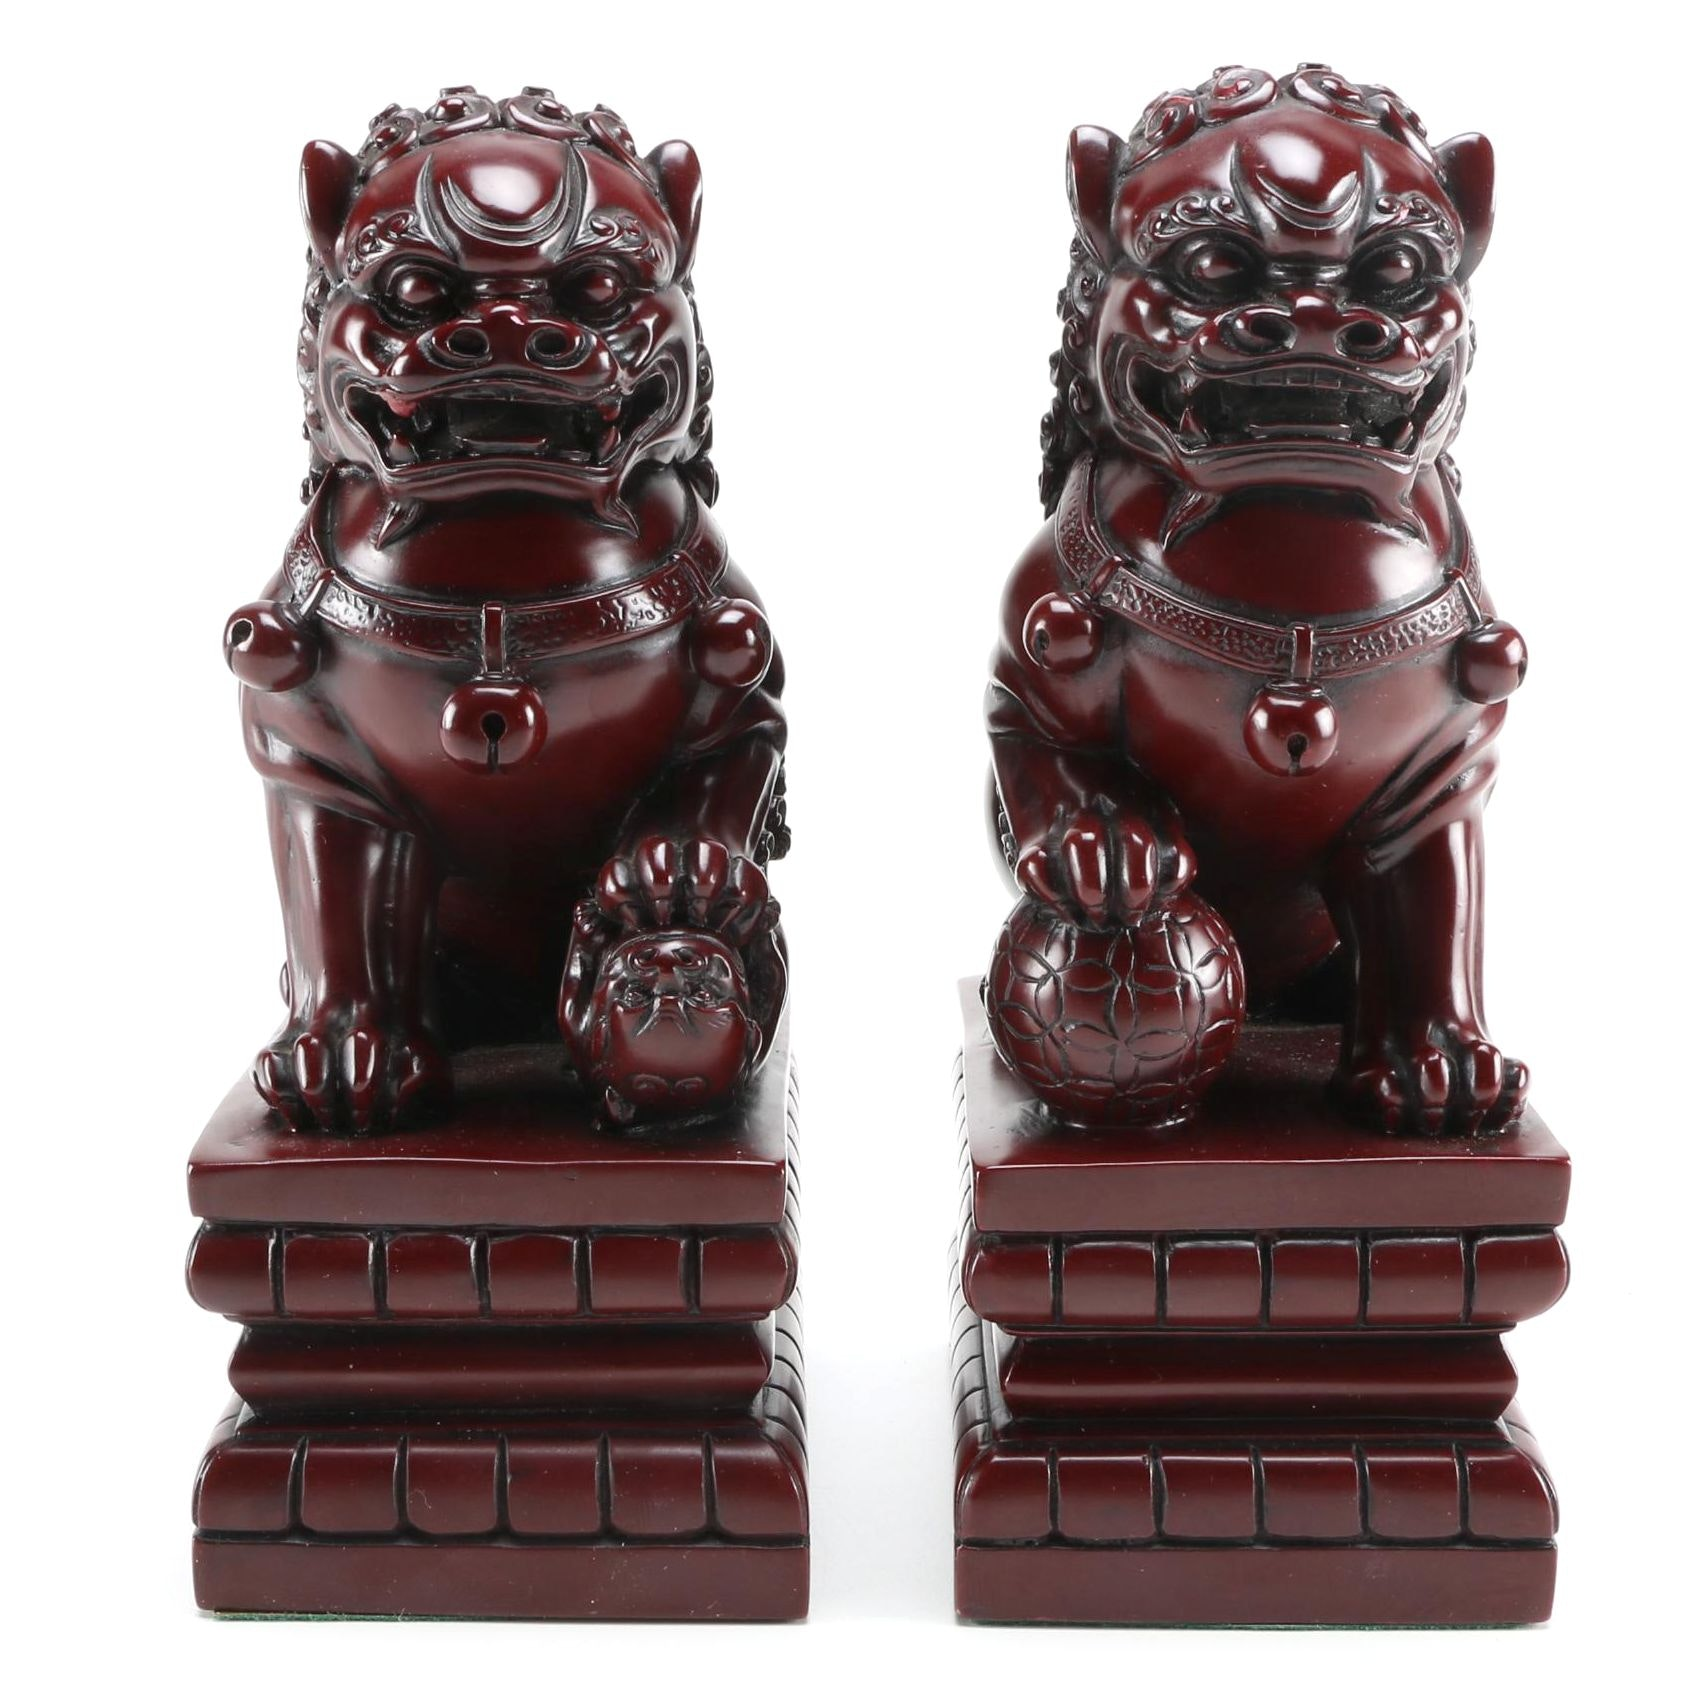 Pair of Chinese Guardian Lion Statuettes